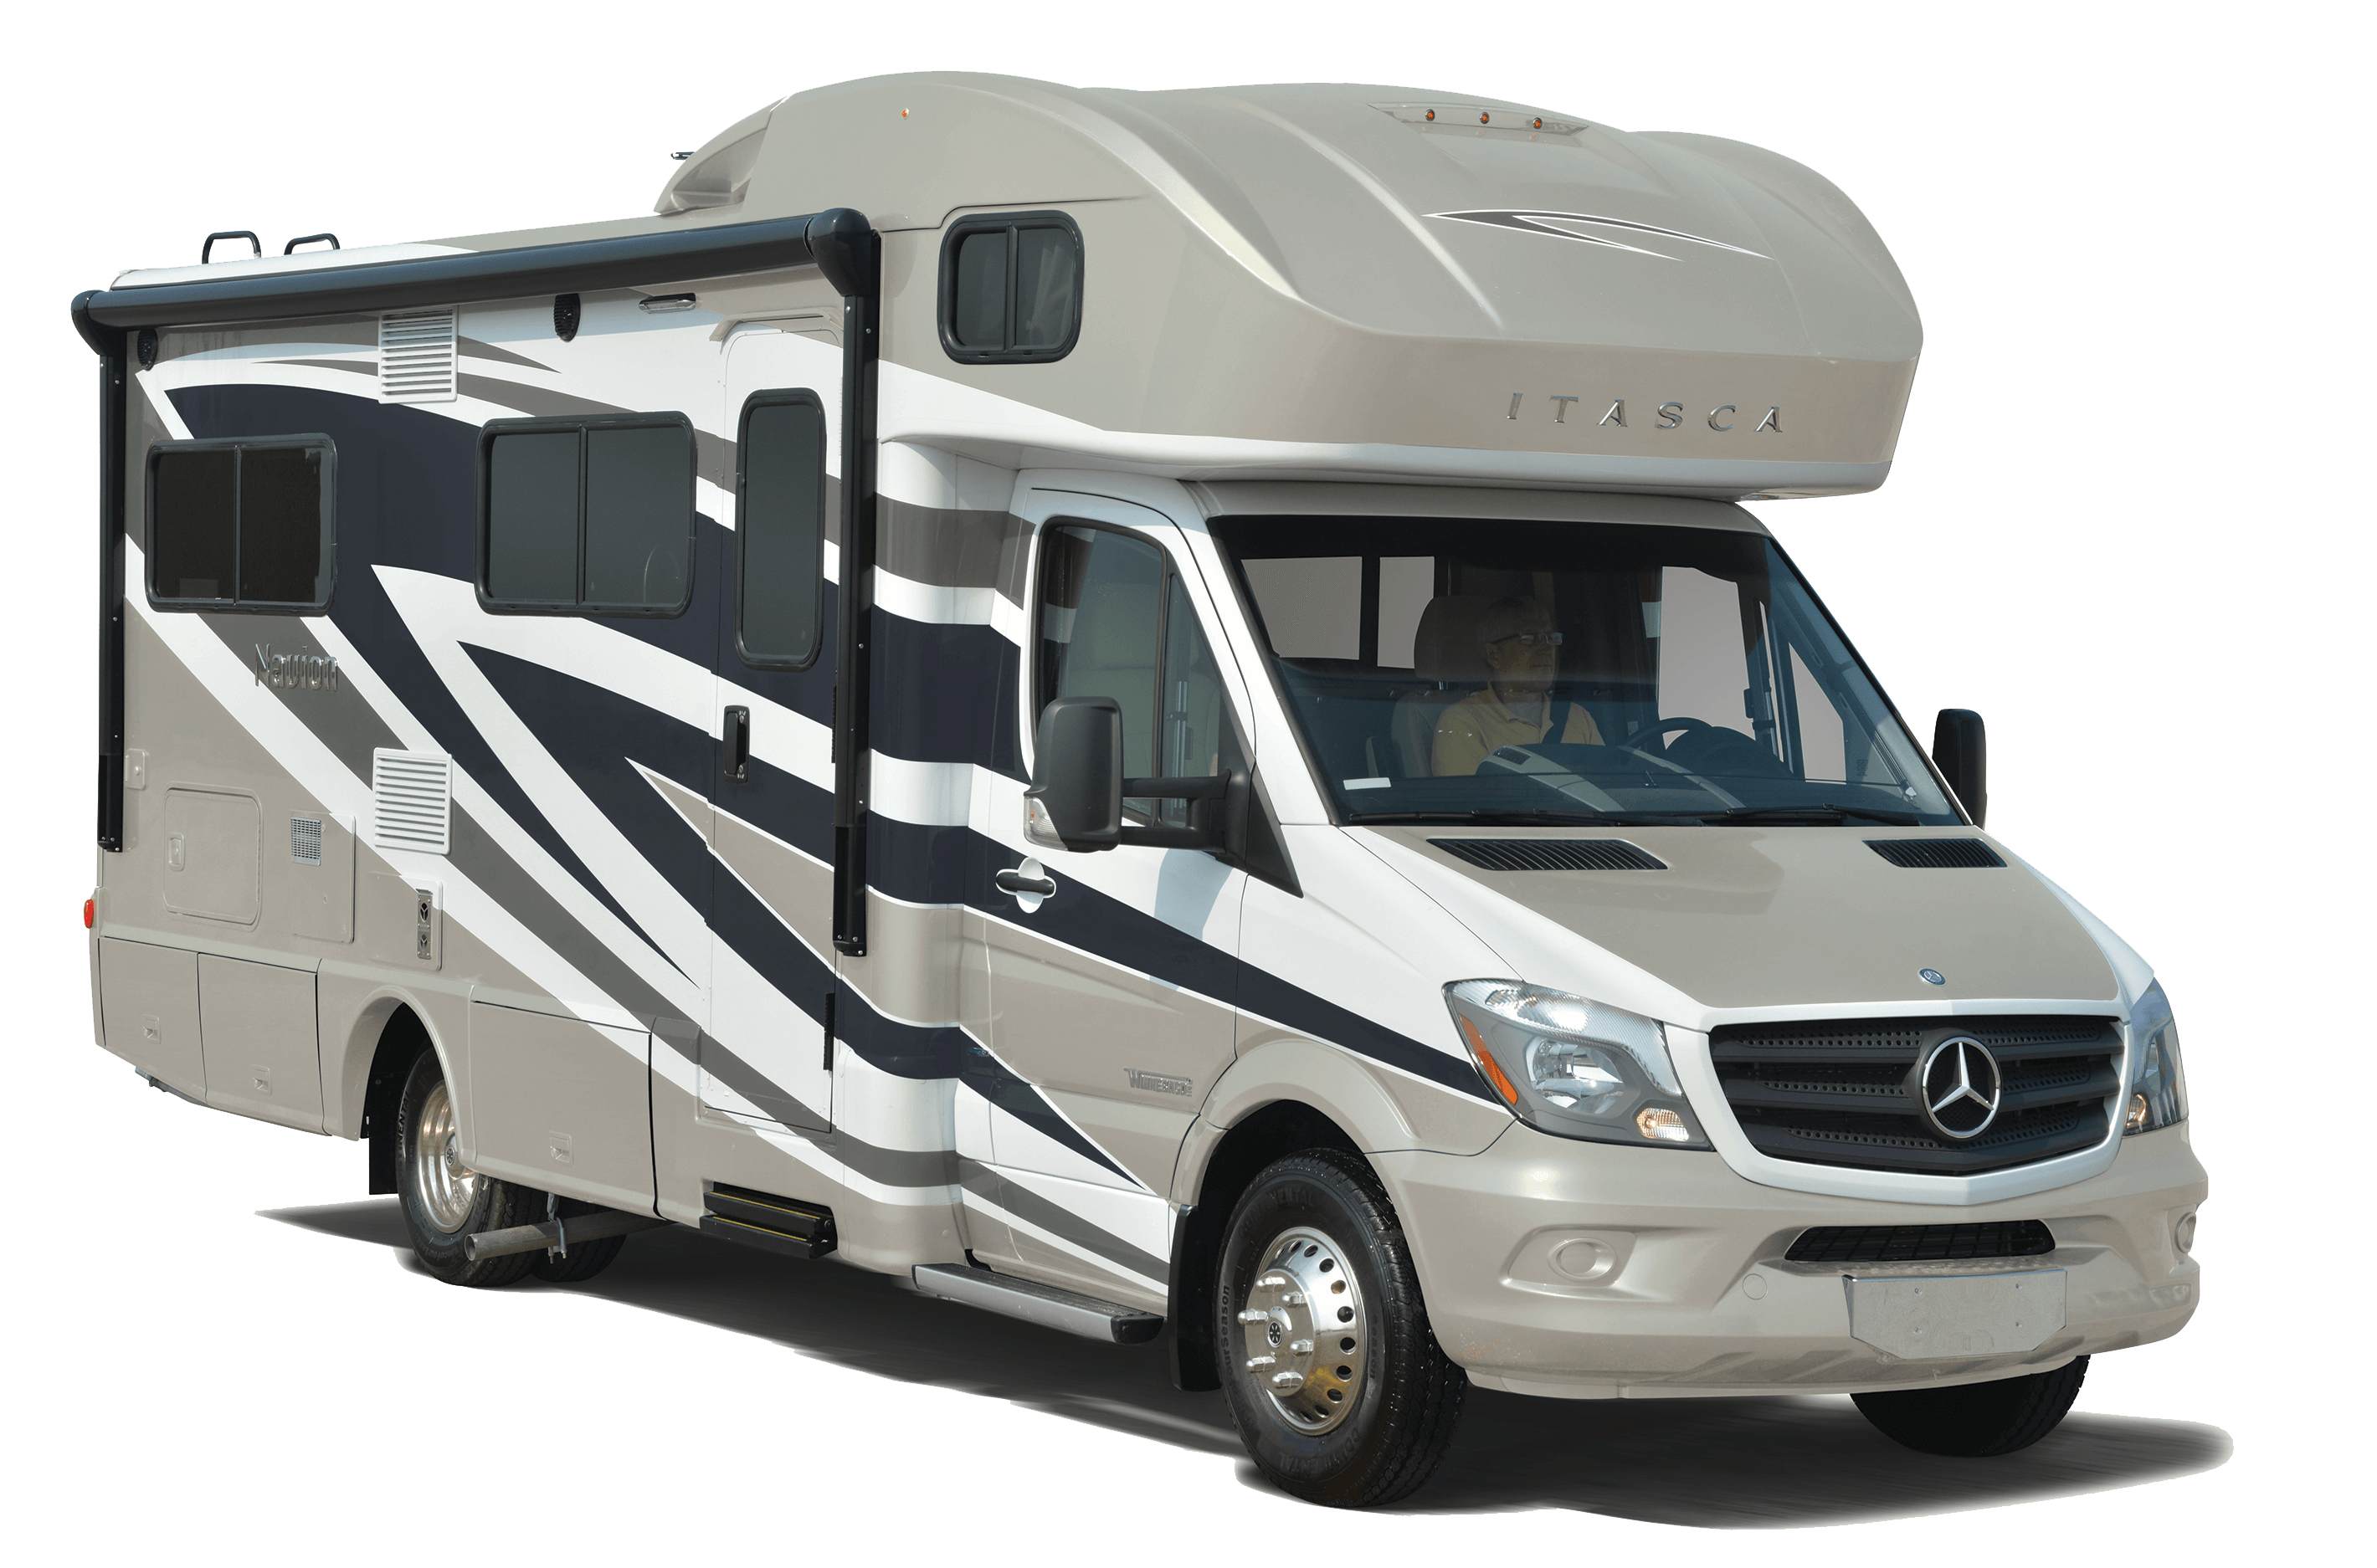 Navion Class C Motor Home | General RV Center